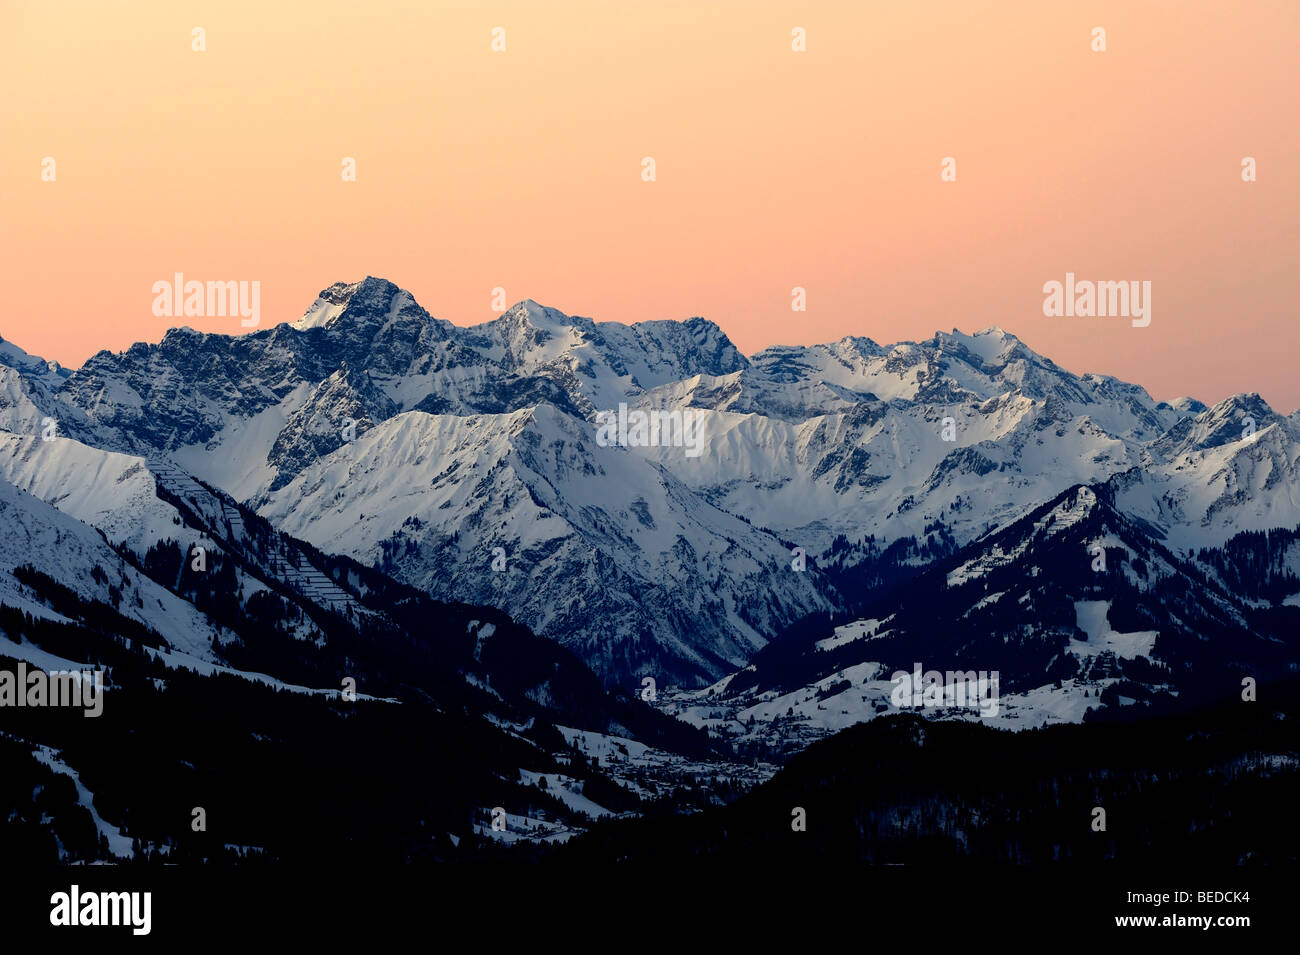 Panoramic view of mountain peaks, at sunset, Allgaeu Alps, Tyrol, Austria, Europe - Stock Image